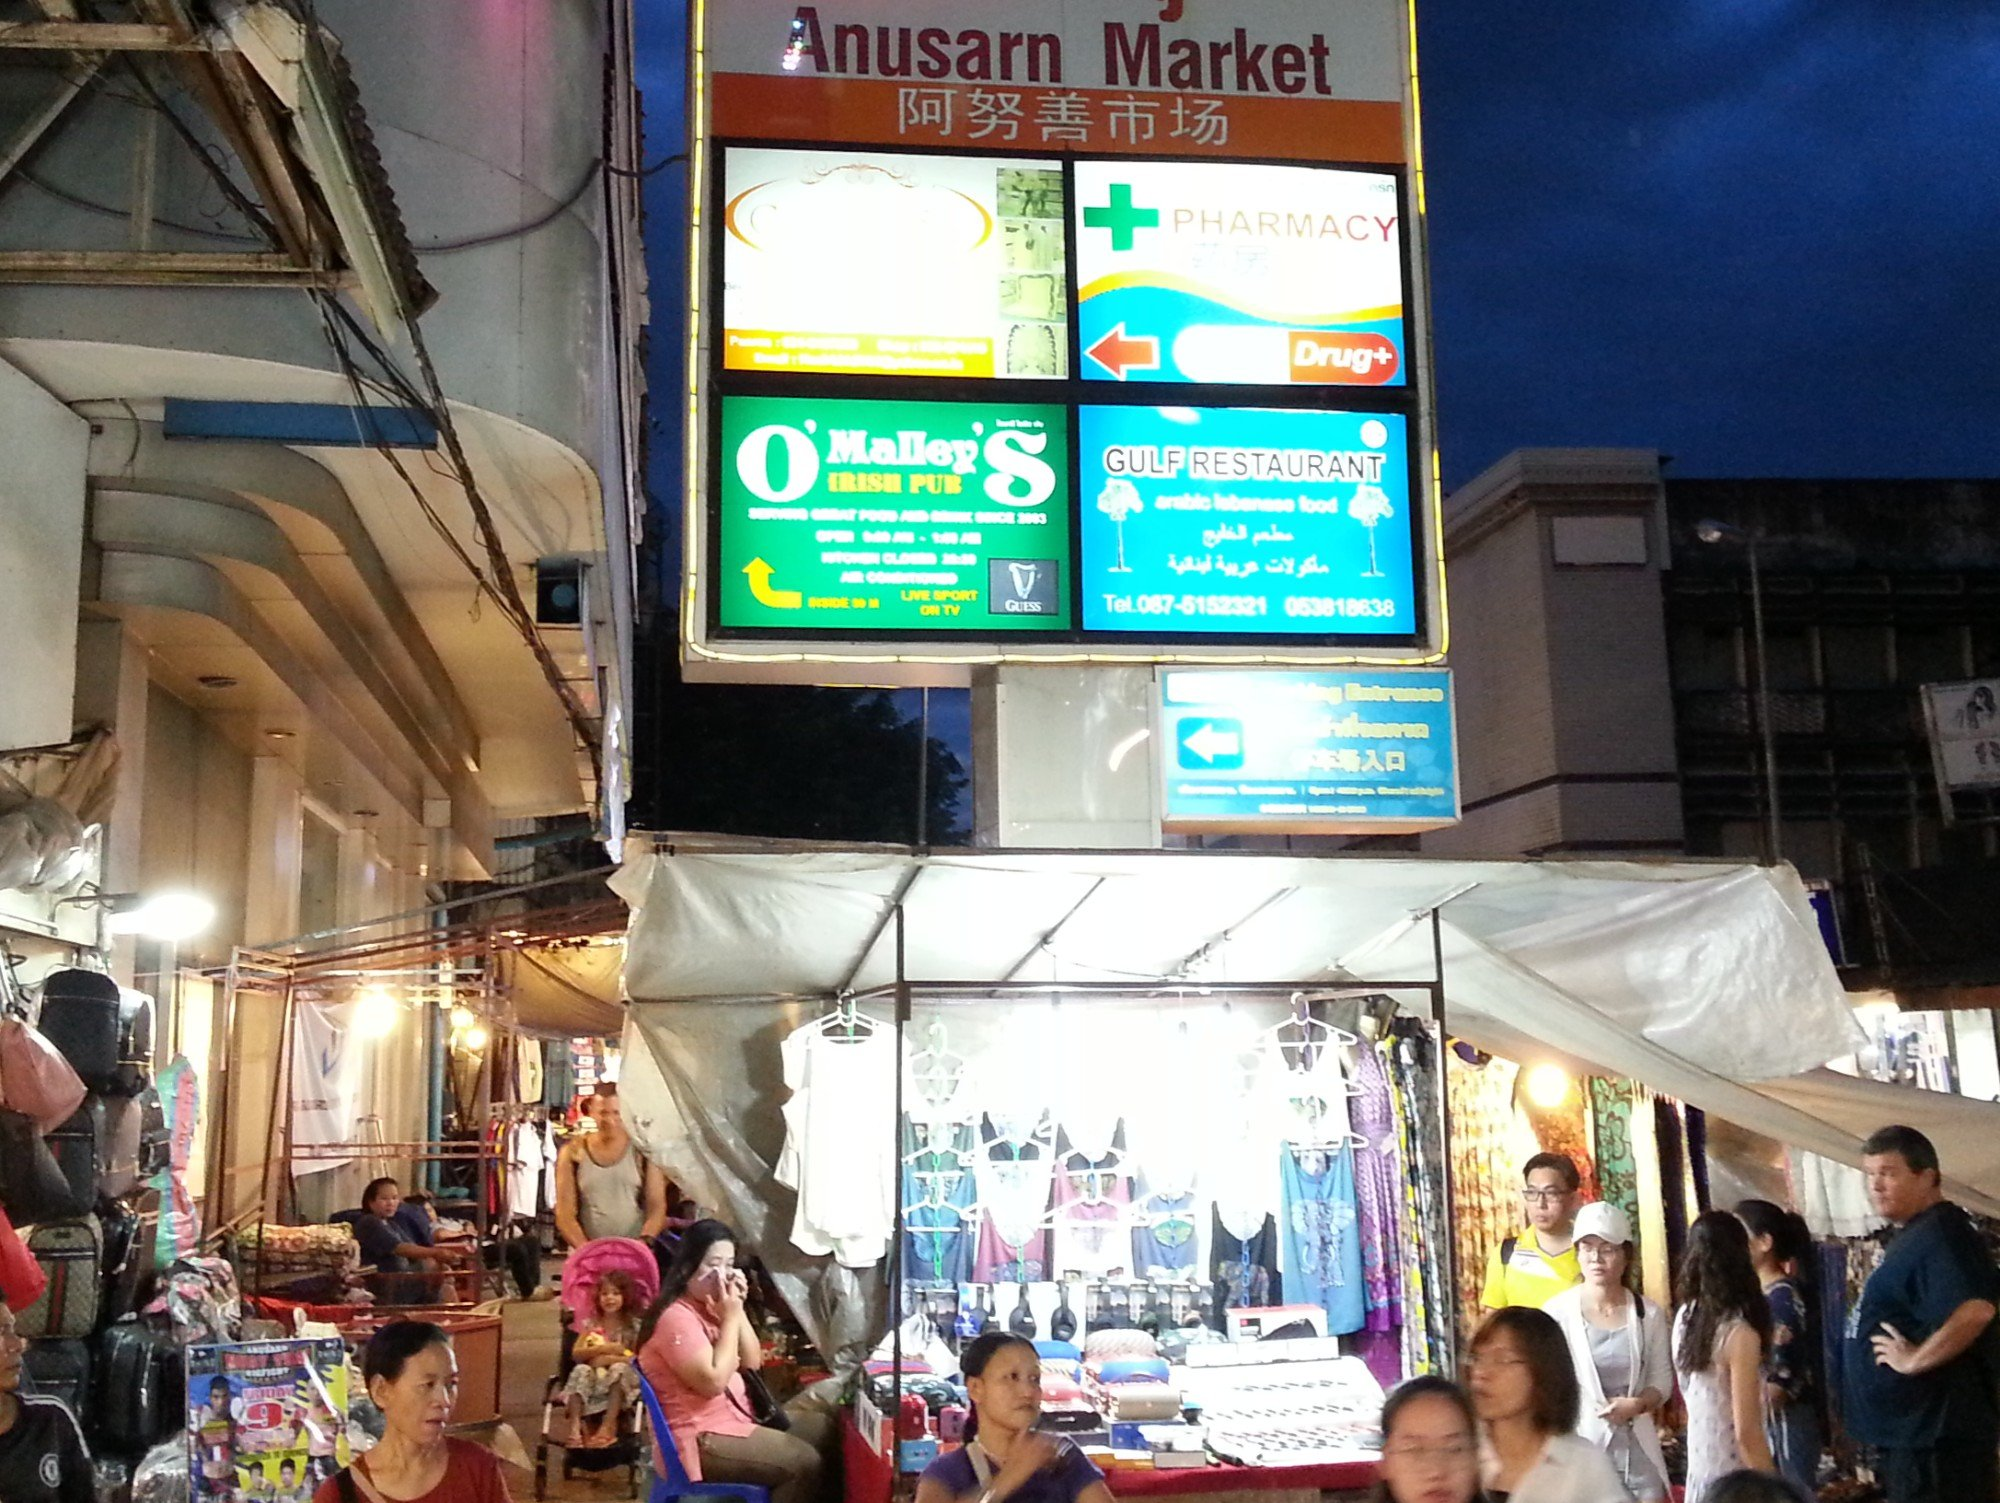 'talat glaang khuen' is the Thai word for night market